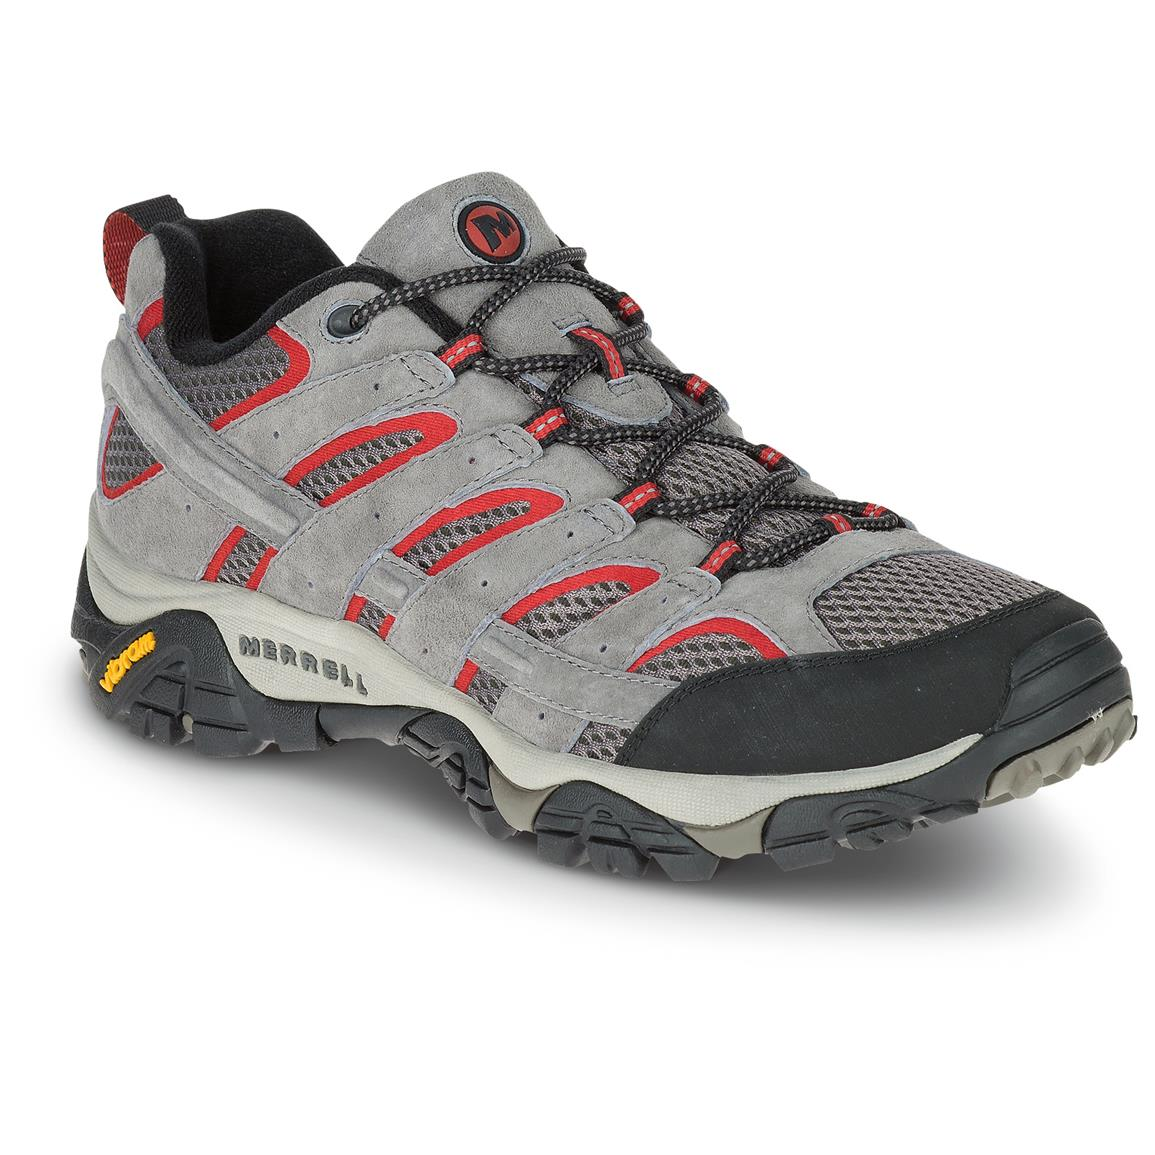 Merrell Men's Moab 2 Vent Hiking Shoes, Charcoal/Gray